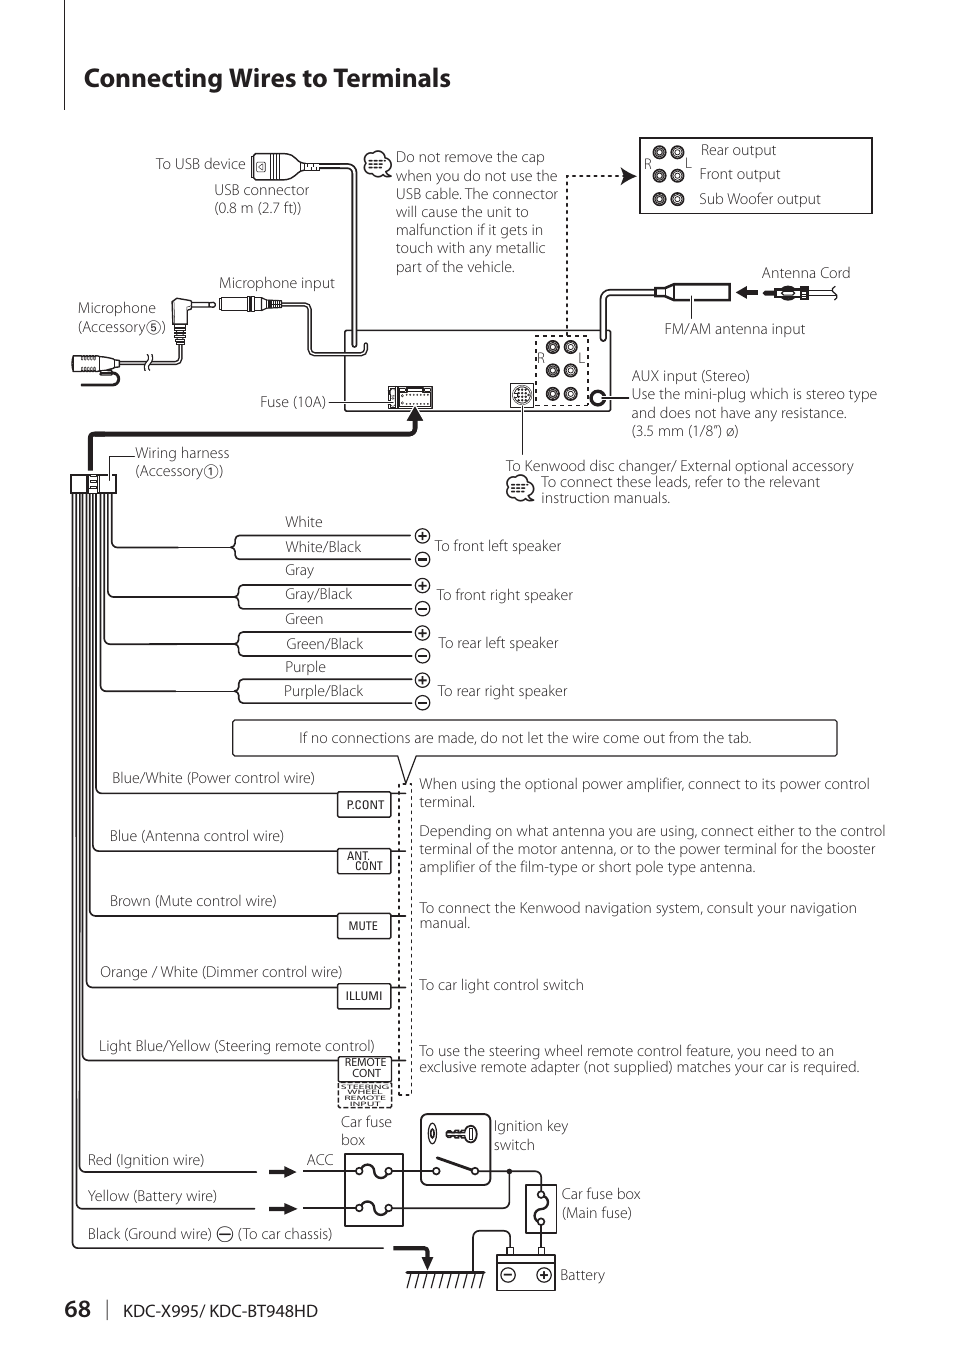 Connecting Wires To Terminals Kenwood Kdc Bt948hd User Manual Page 68 76